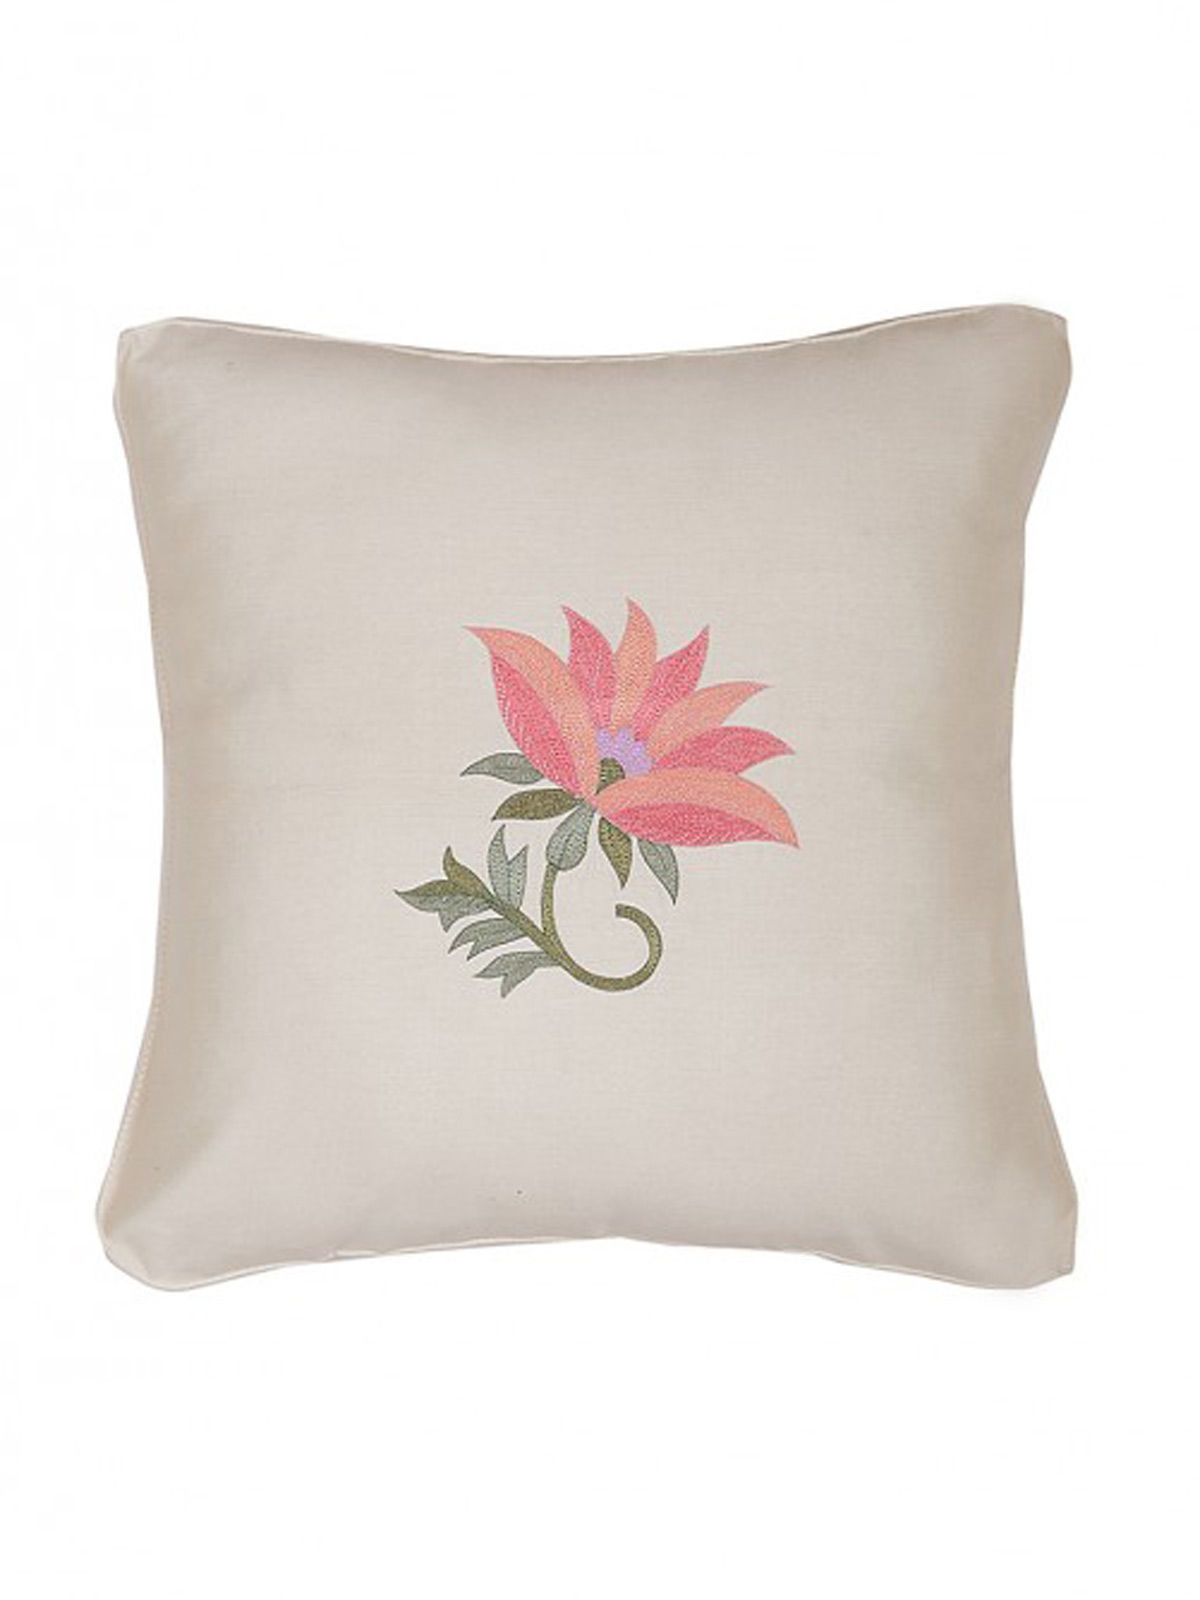 White-Pink Embroidered Silk Cushion Cover with Floral Motif